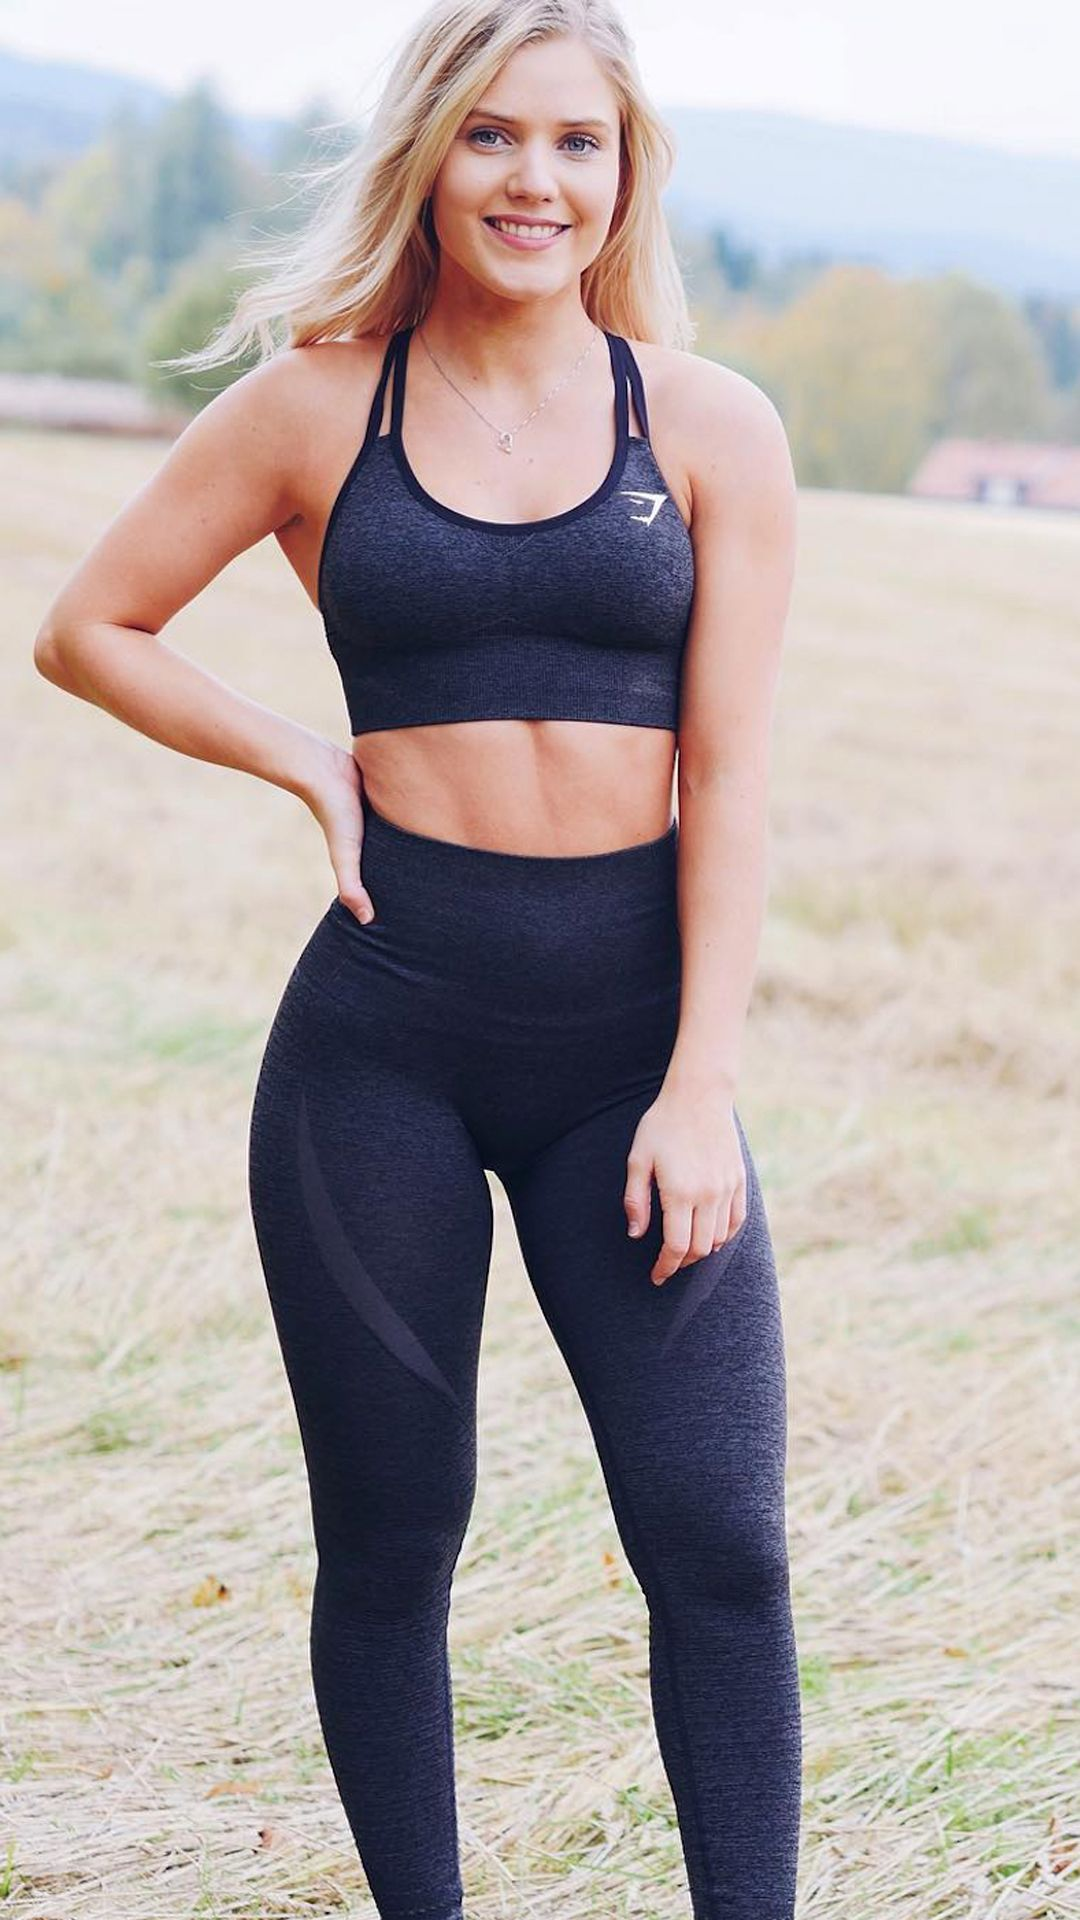 54a54ba67d Perfect set.  carola.kristiansen styling the Seamless Cross-Back Sports Bra  and High Waisted Leggings in Black Marl.